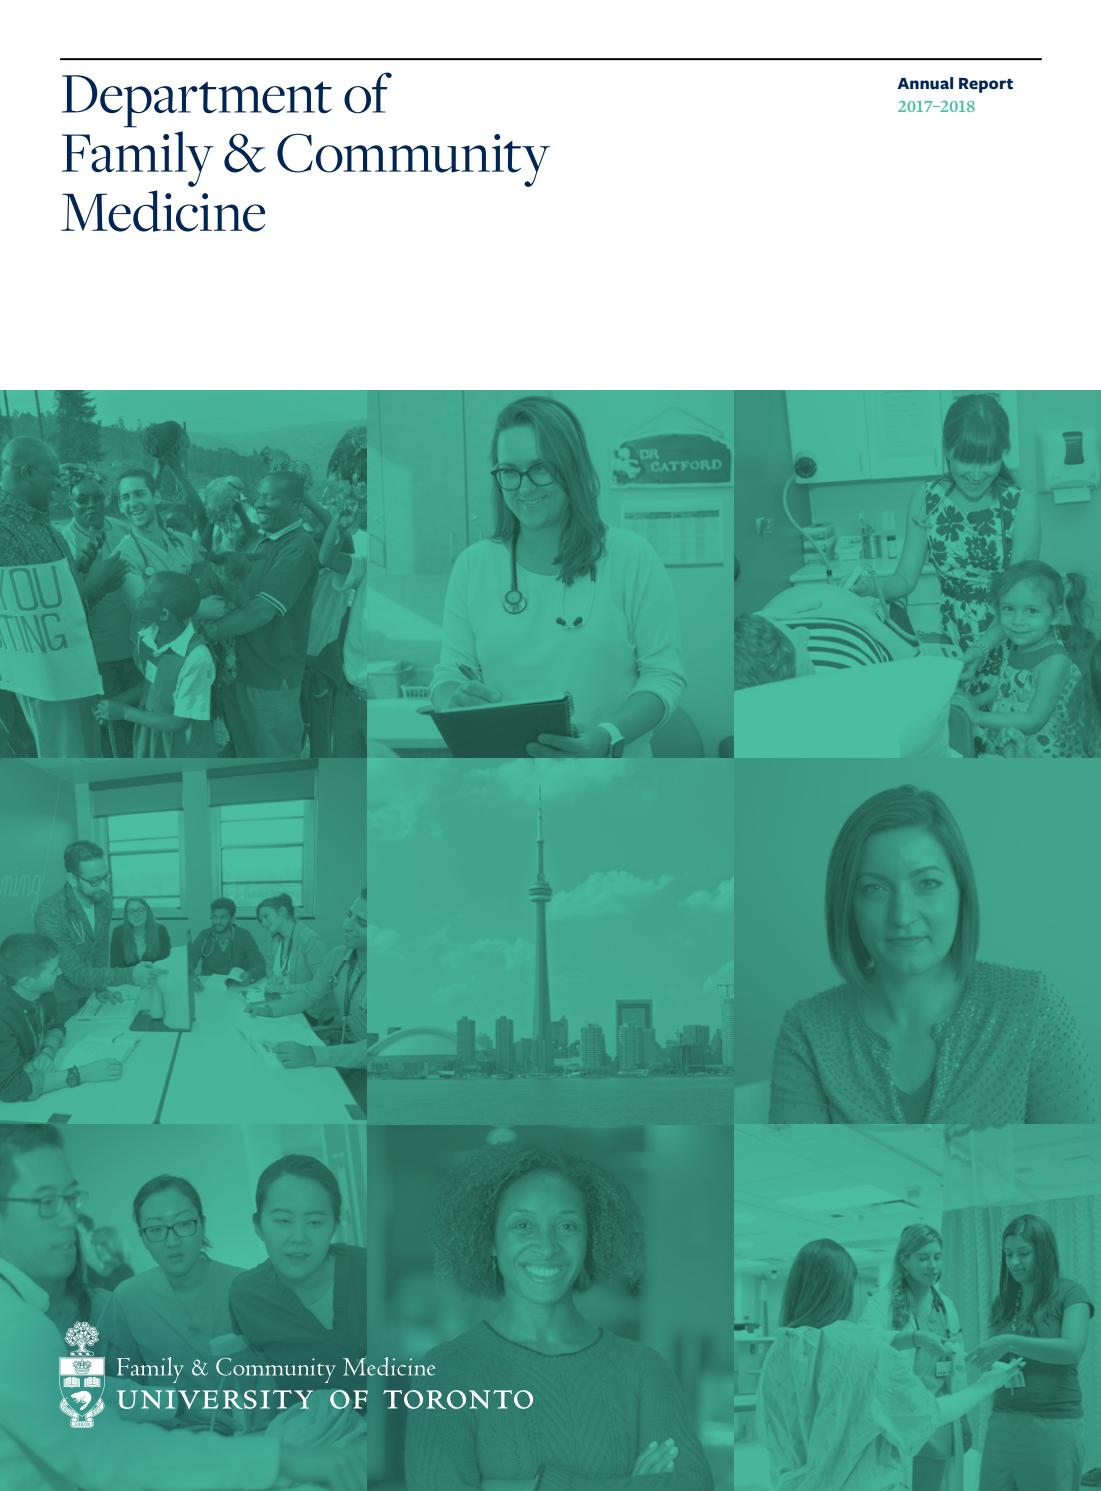 Department of Family and Community Medicine Annual Report